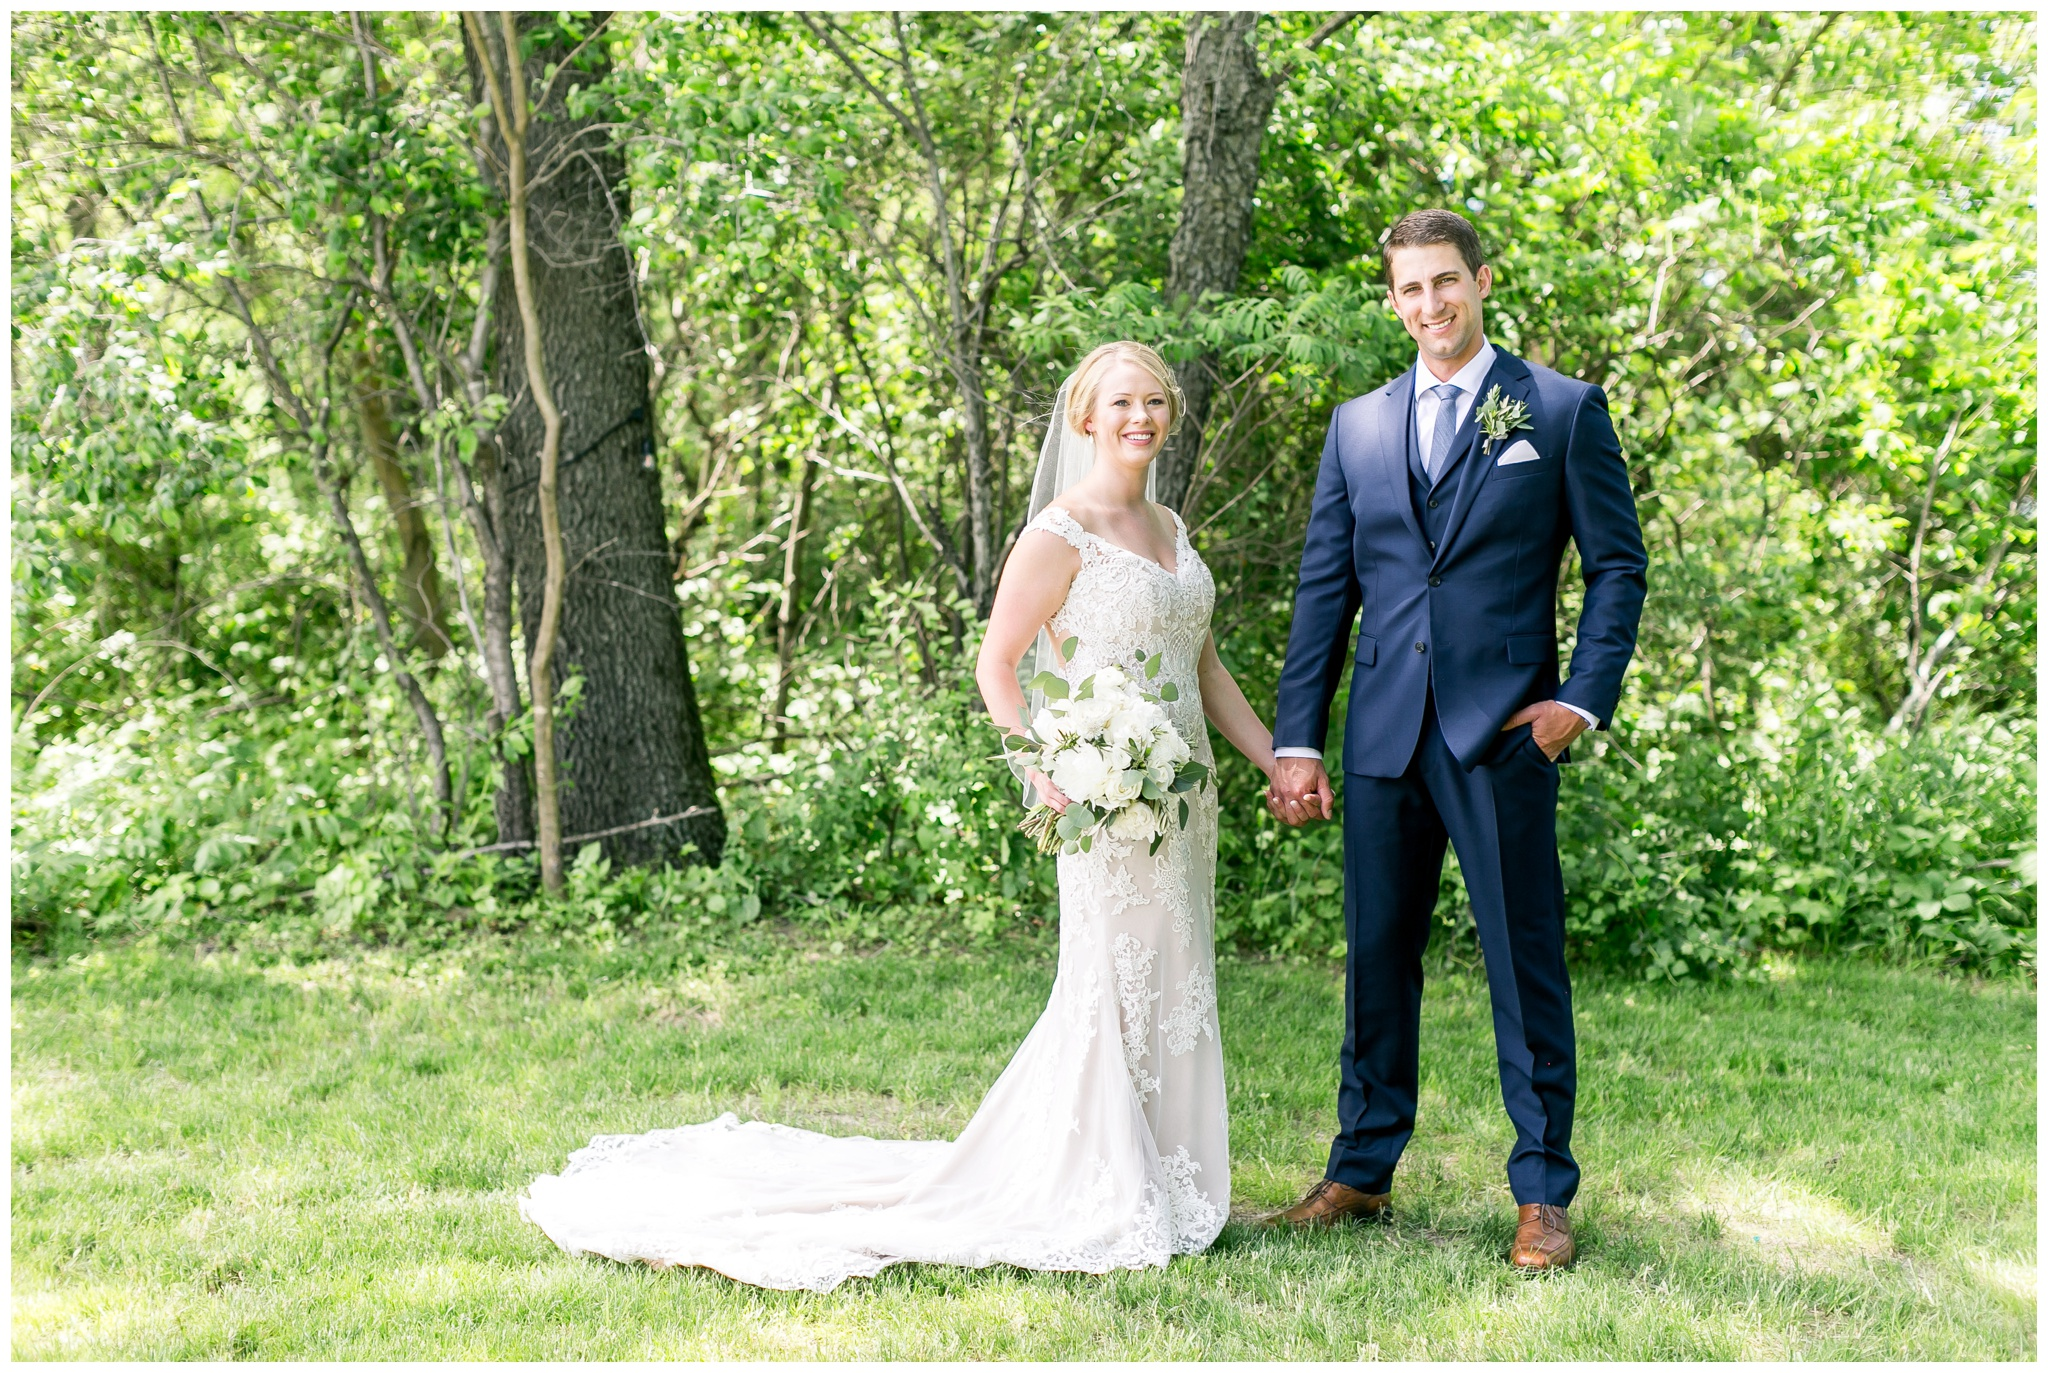 private_estate_wedding_stoughton_wisconsin_wedding_caynay_photo_3839.jpg